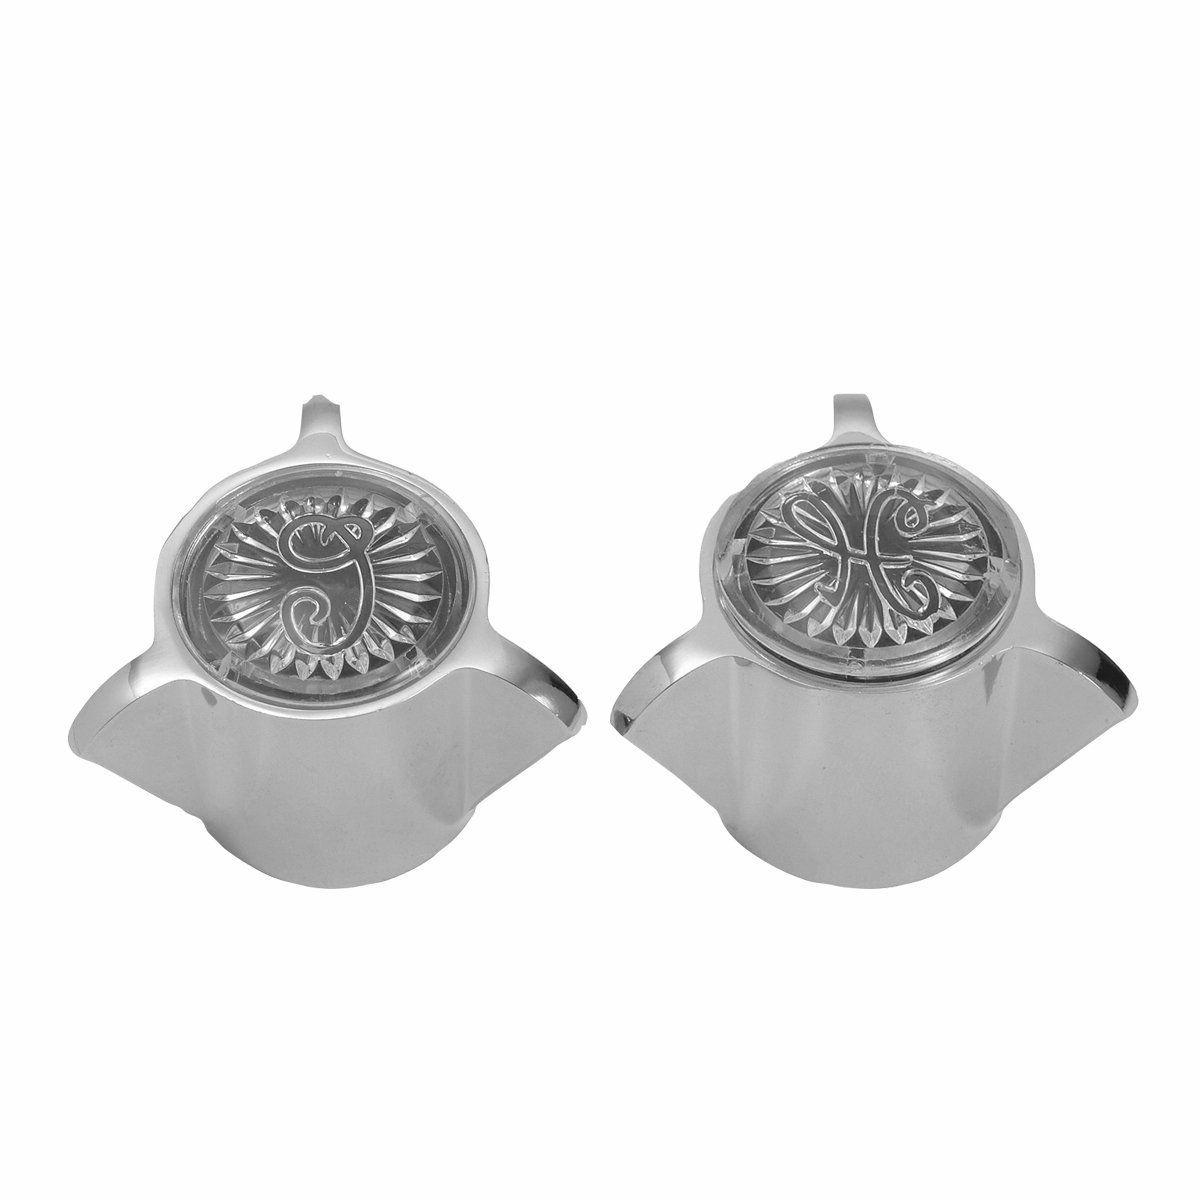 Brasscraft Sh2851 Sayco Faucets Handle Pair For Lavatory And